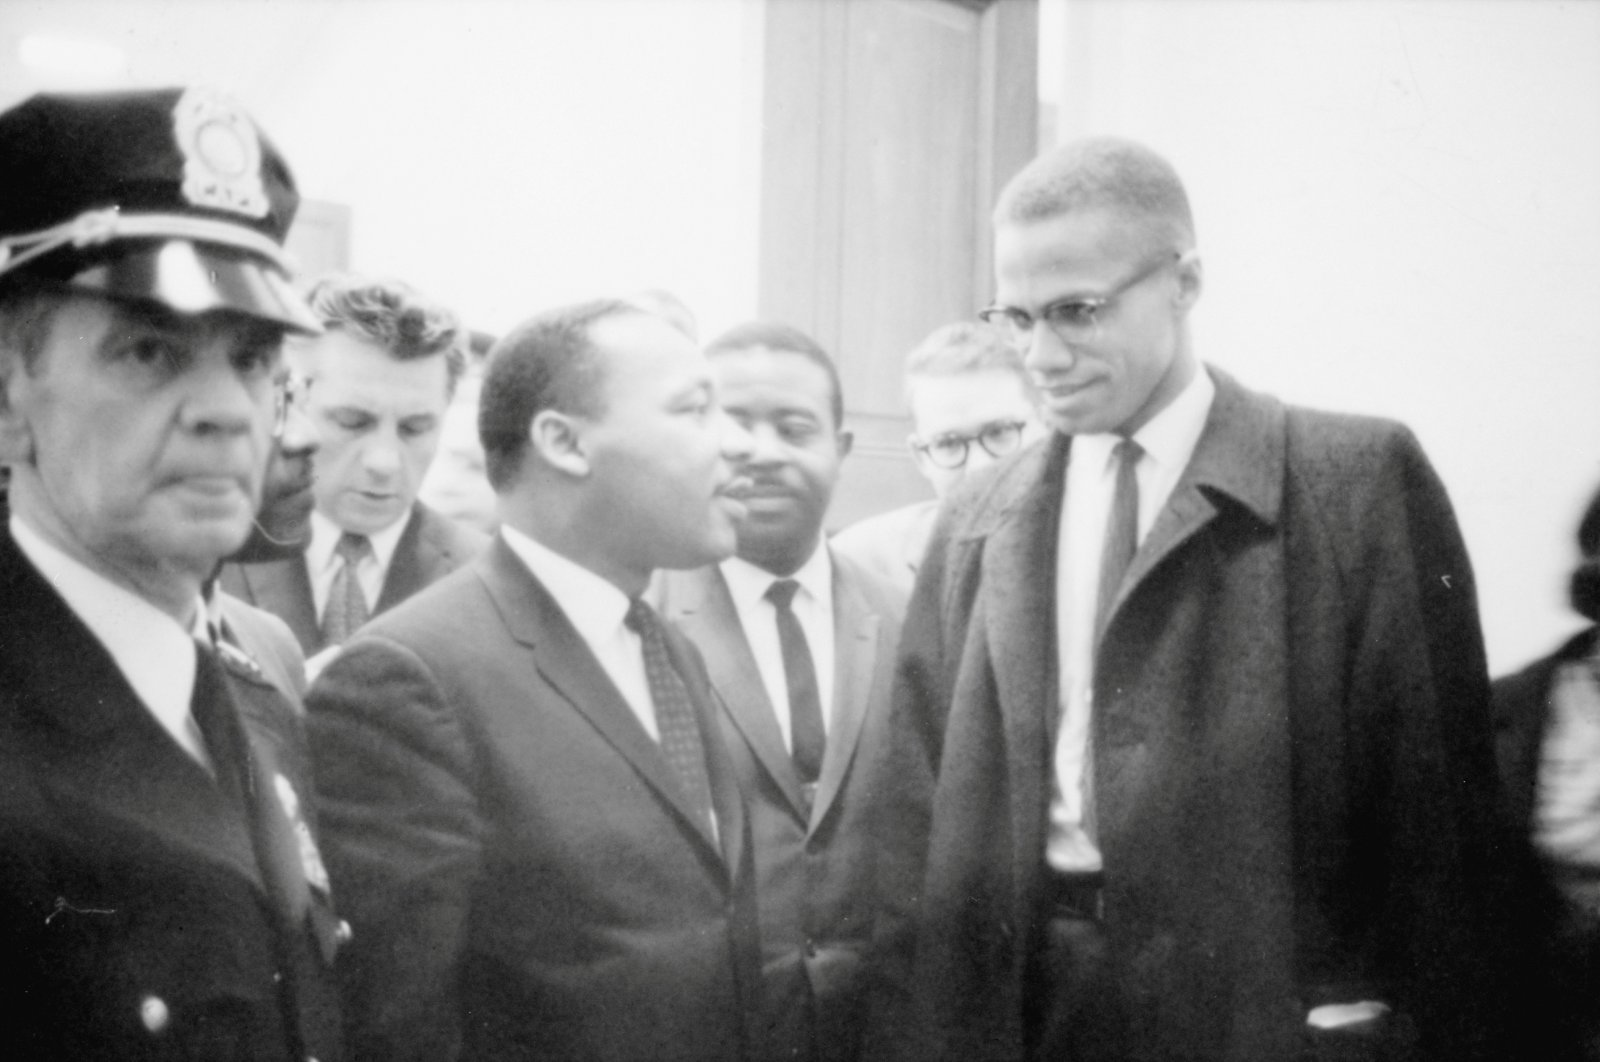 Martin Luther King Jr. and Malcolm X wait for a press conference to begin in an unknown location, March 26, 1964. (Library of Congress/Marion S. Trikosko/Handout via Reuters)